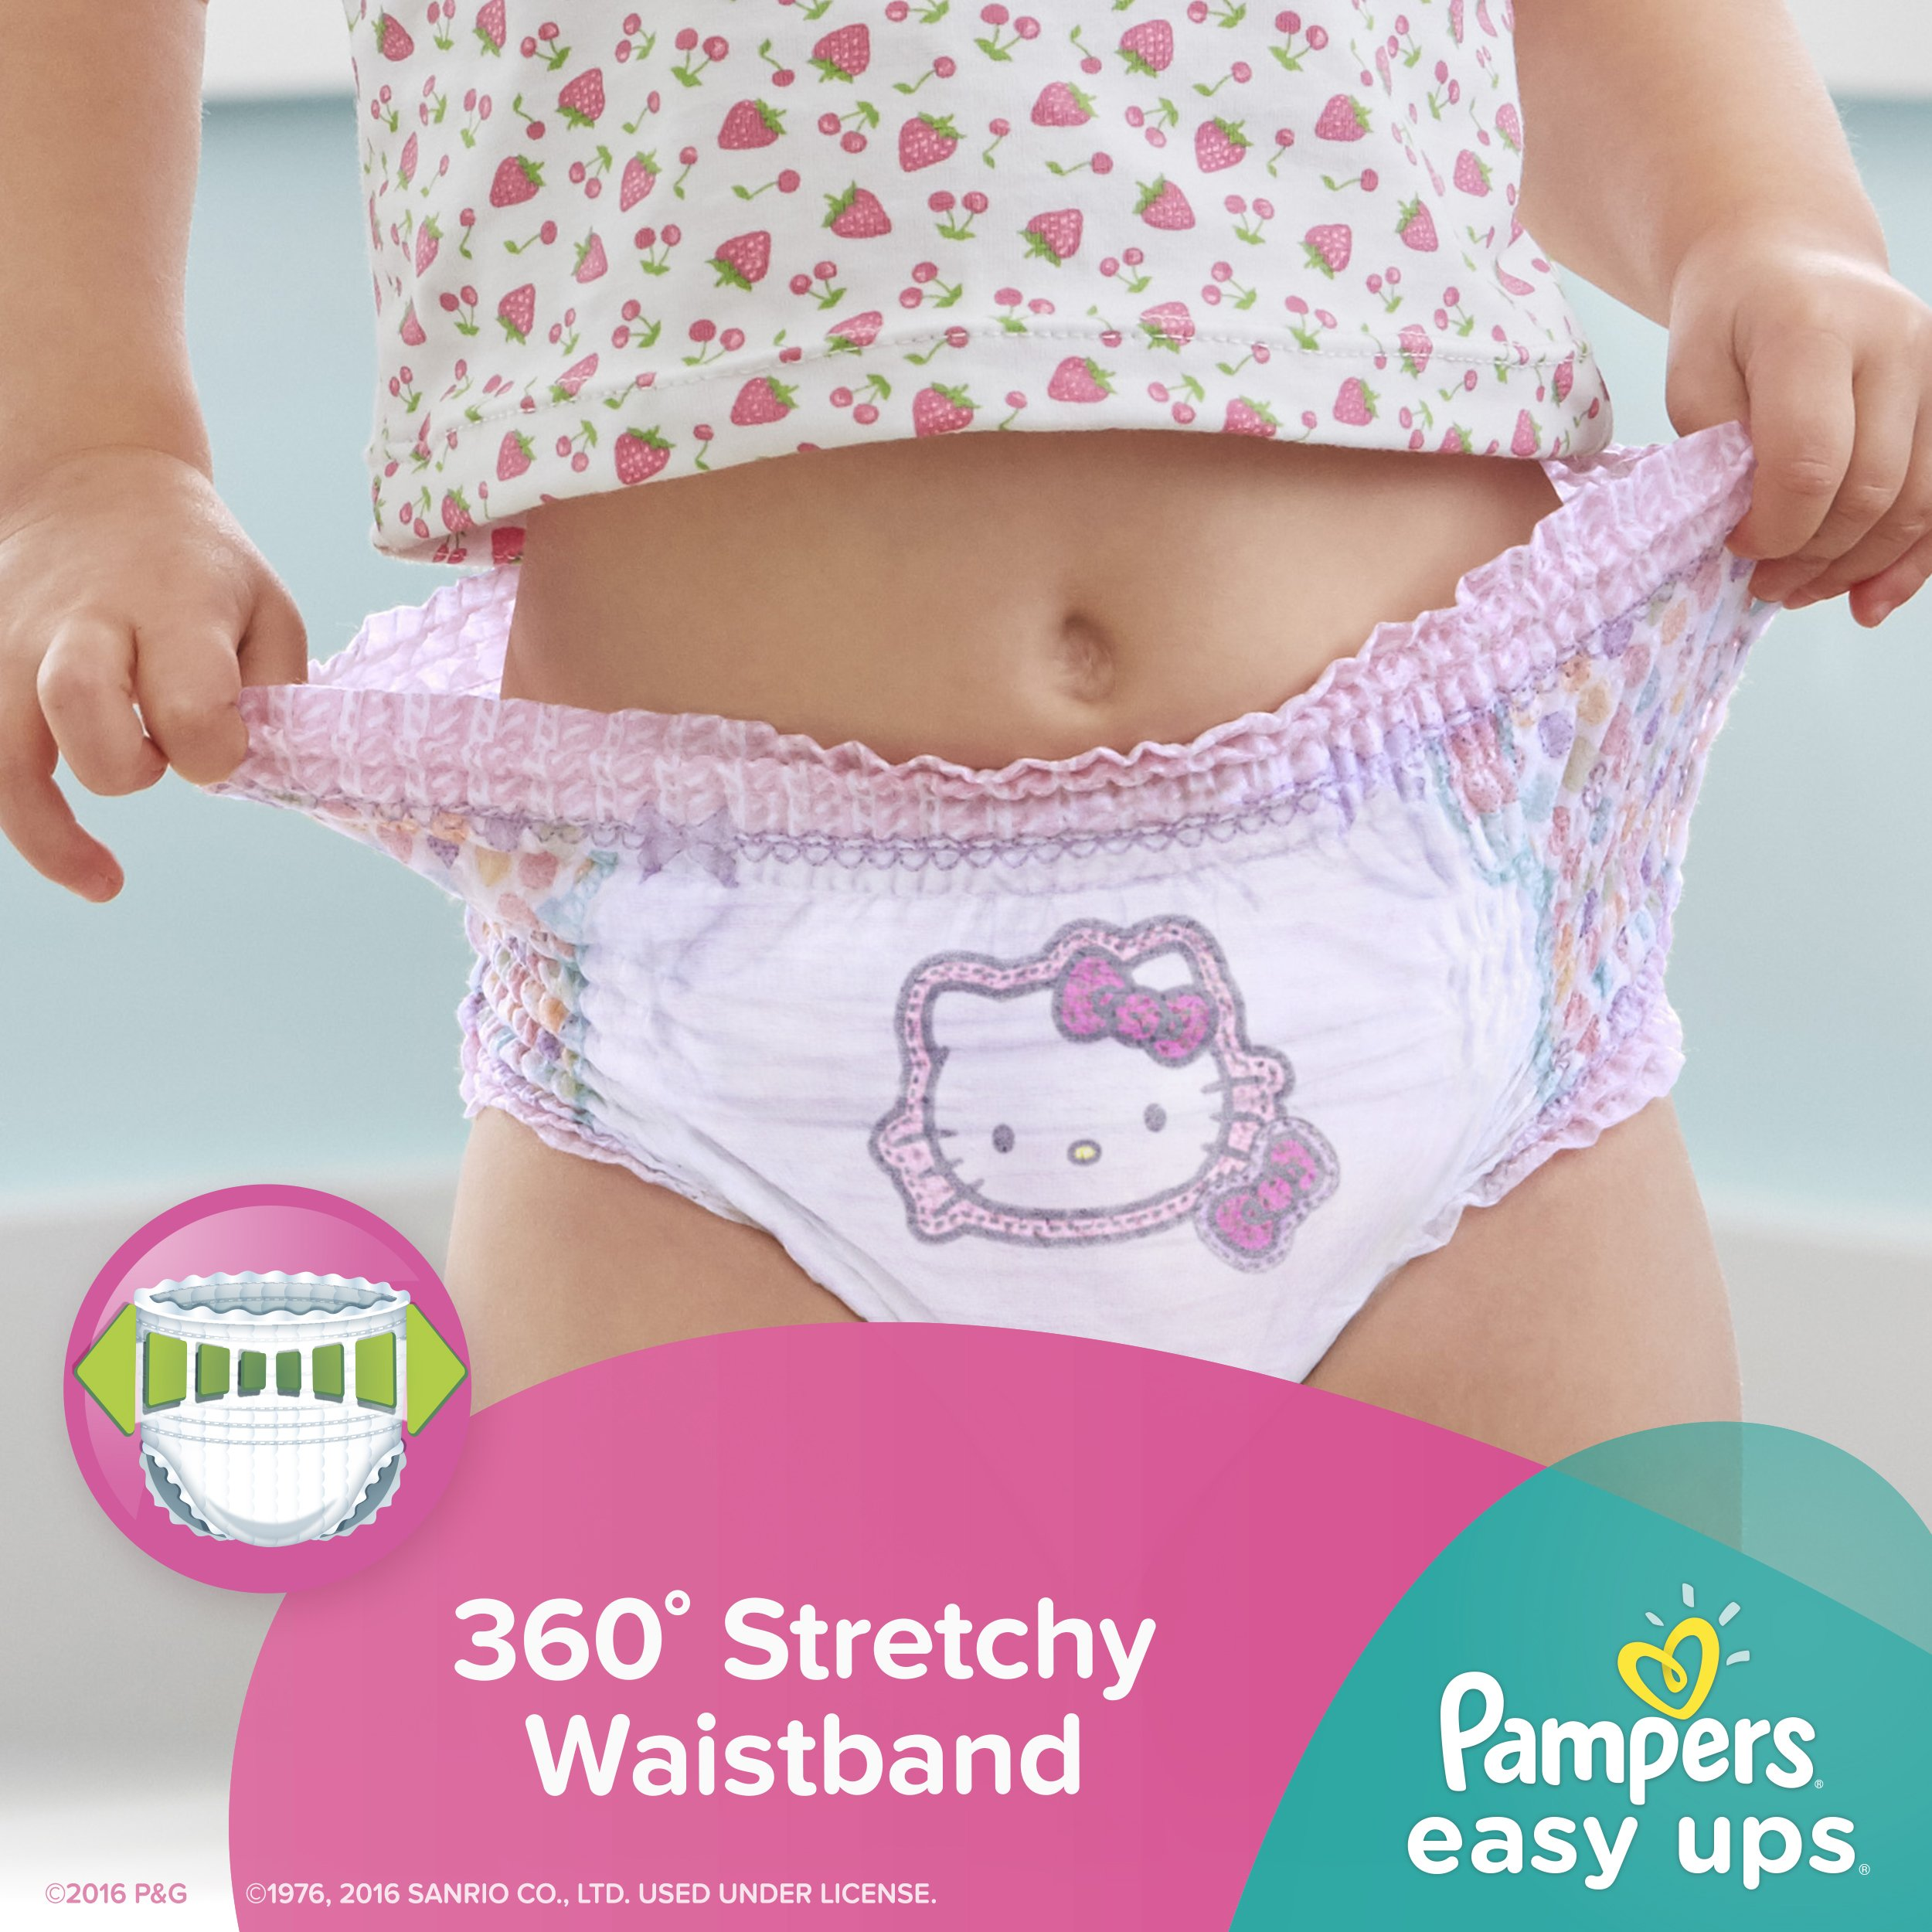 Pampers Easy Ups Training Pants Pull On Disposable Diapers for Girls Size 5 (3T-4T), 148 Count, ONE MONTH SUPPLY by Pampers (Image #5)